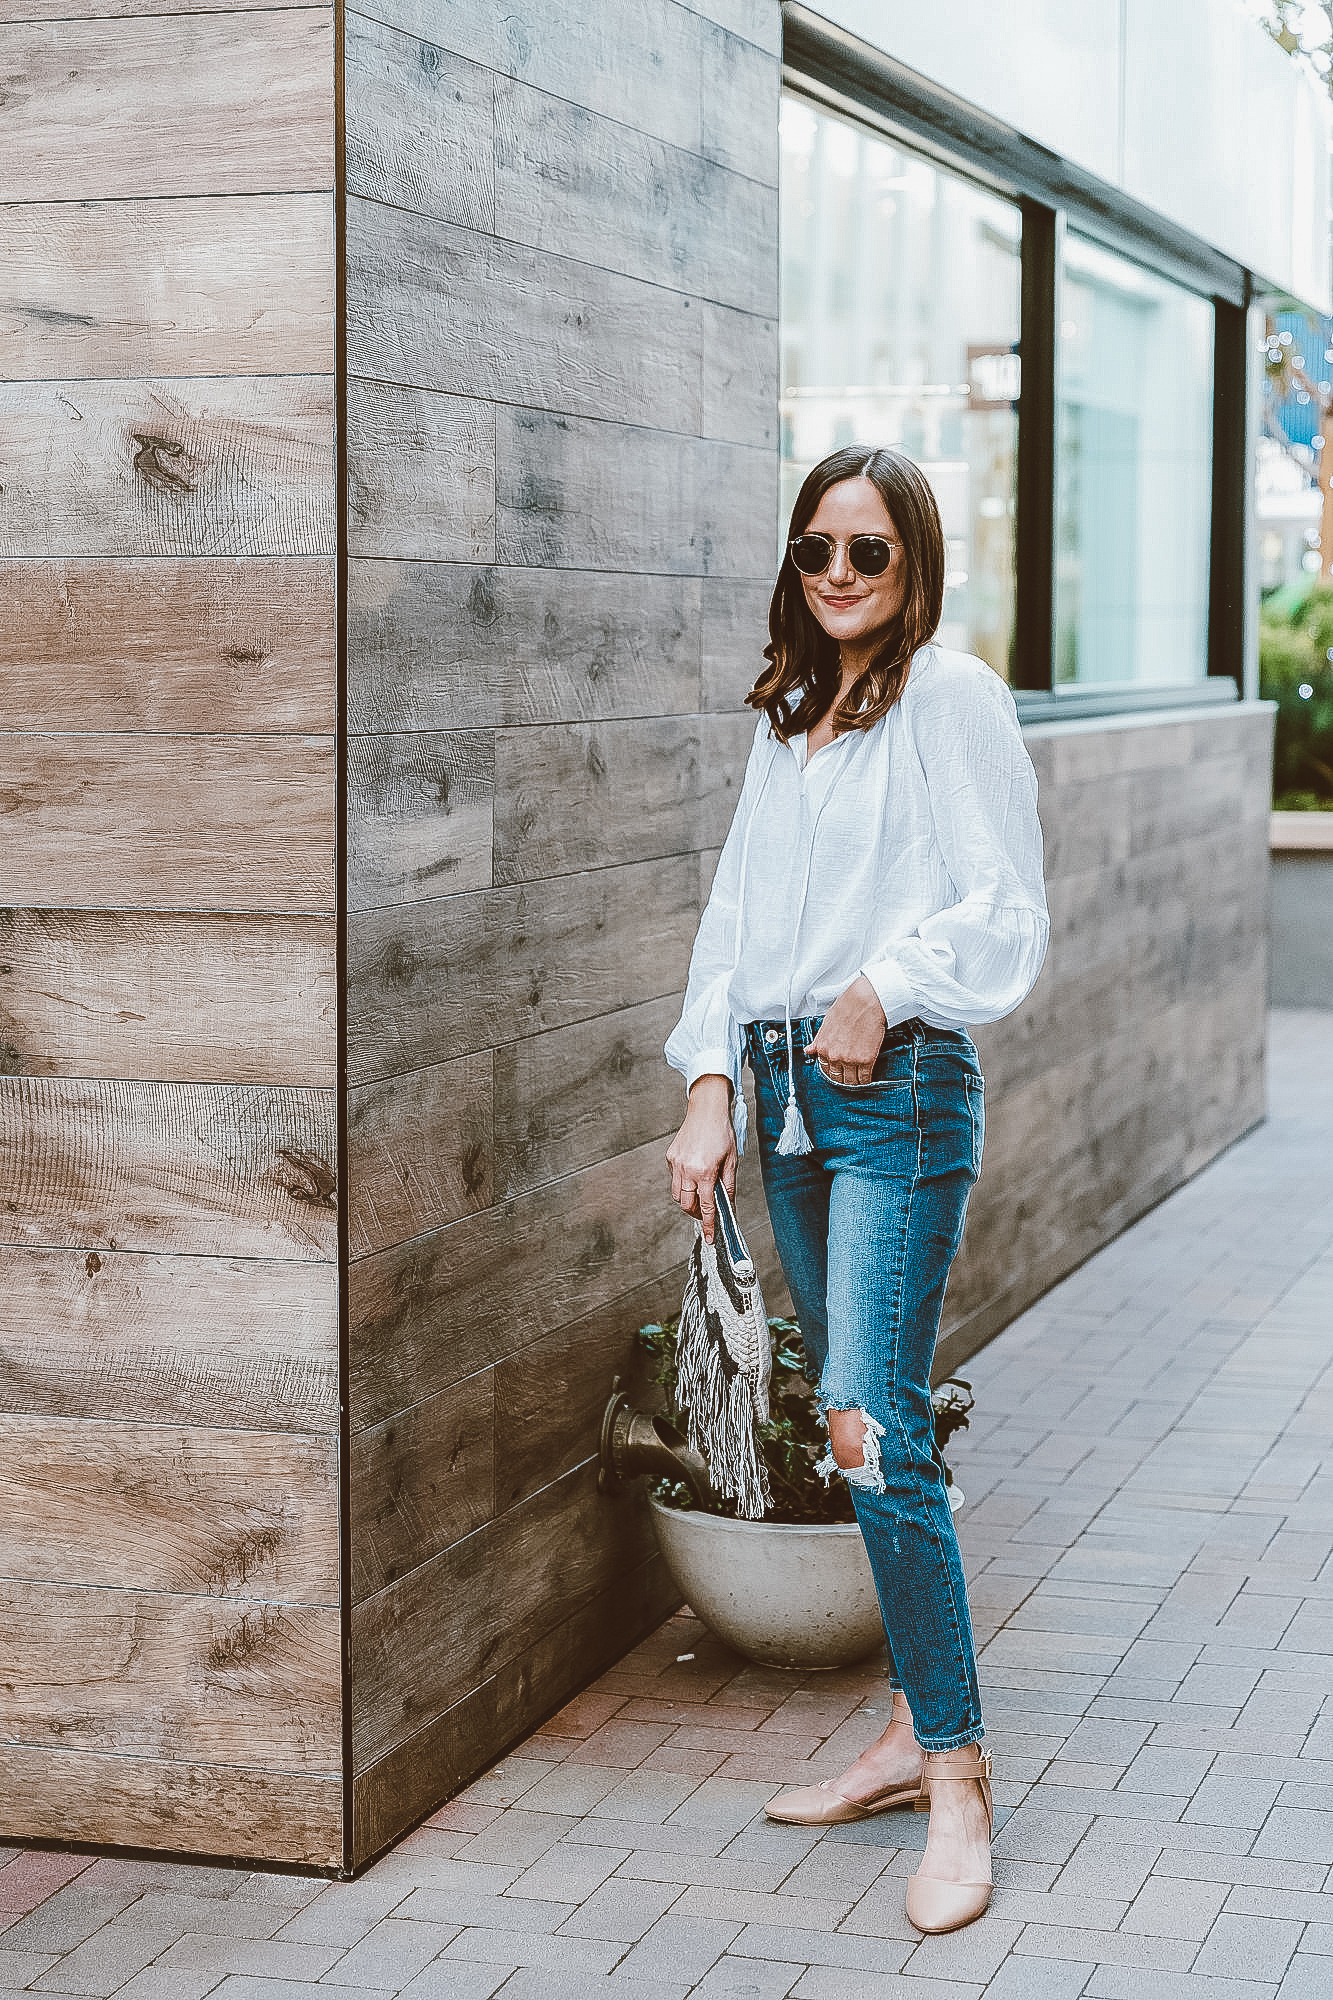 white top and jeans outfit for spring